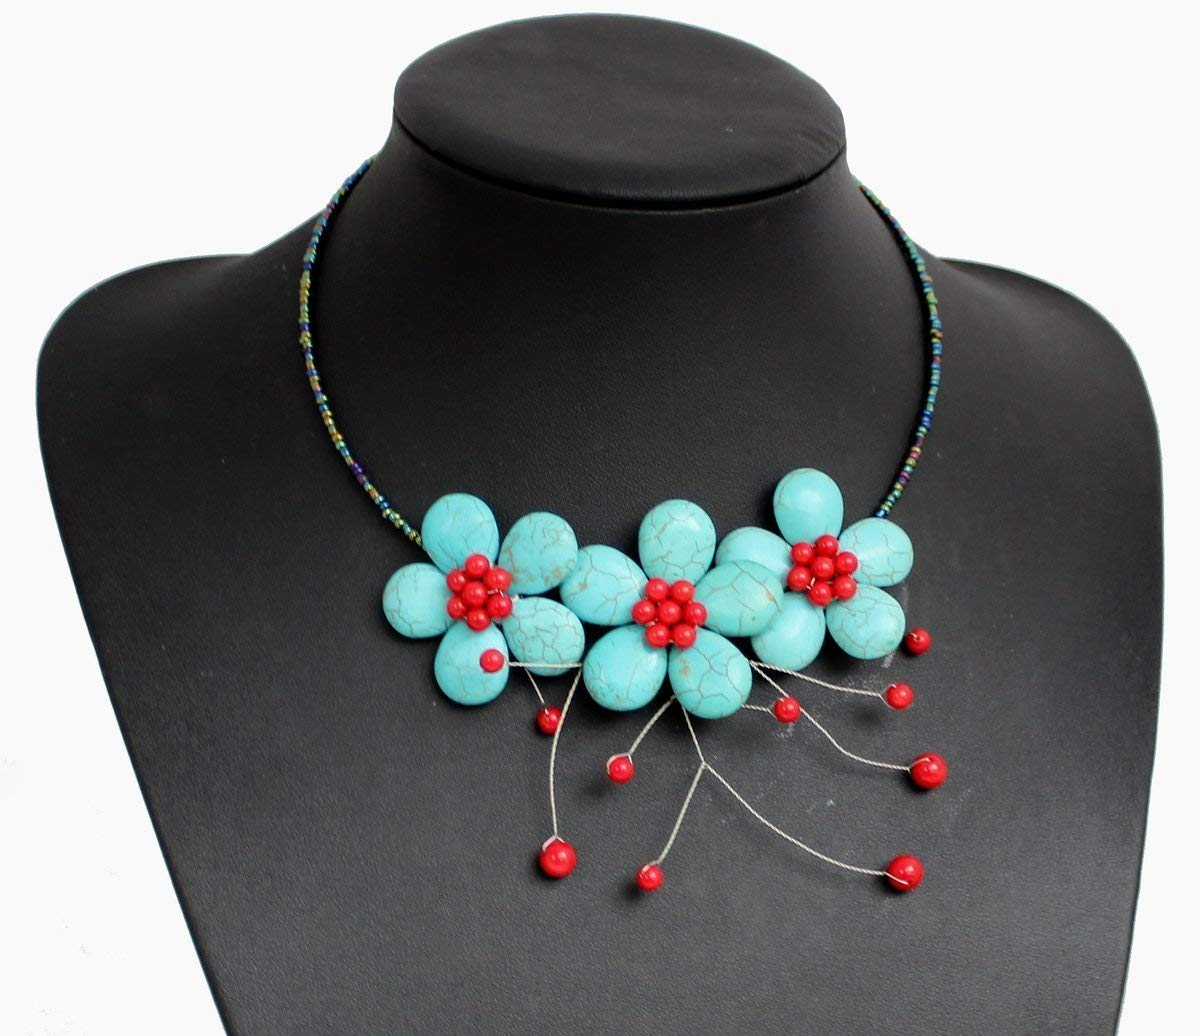 Hand-Woven Trust Blue Turquoise Stone Brand Cheap Sale Venue Beaded Beads Neckla Coral Flower